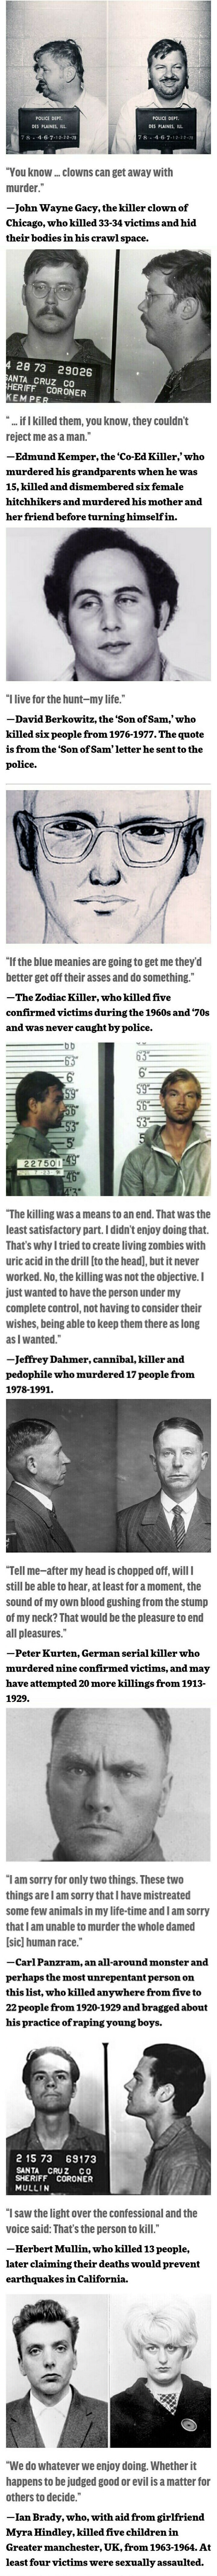 Creepy serial killer quotes